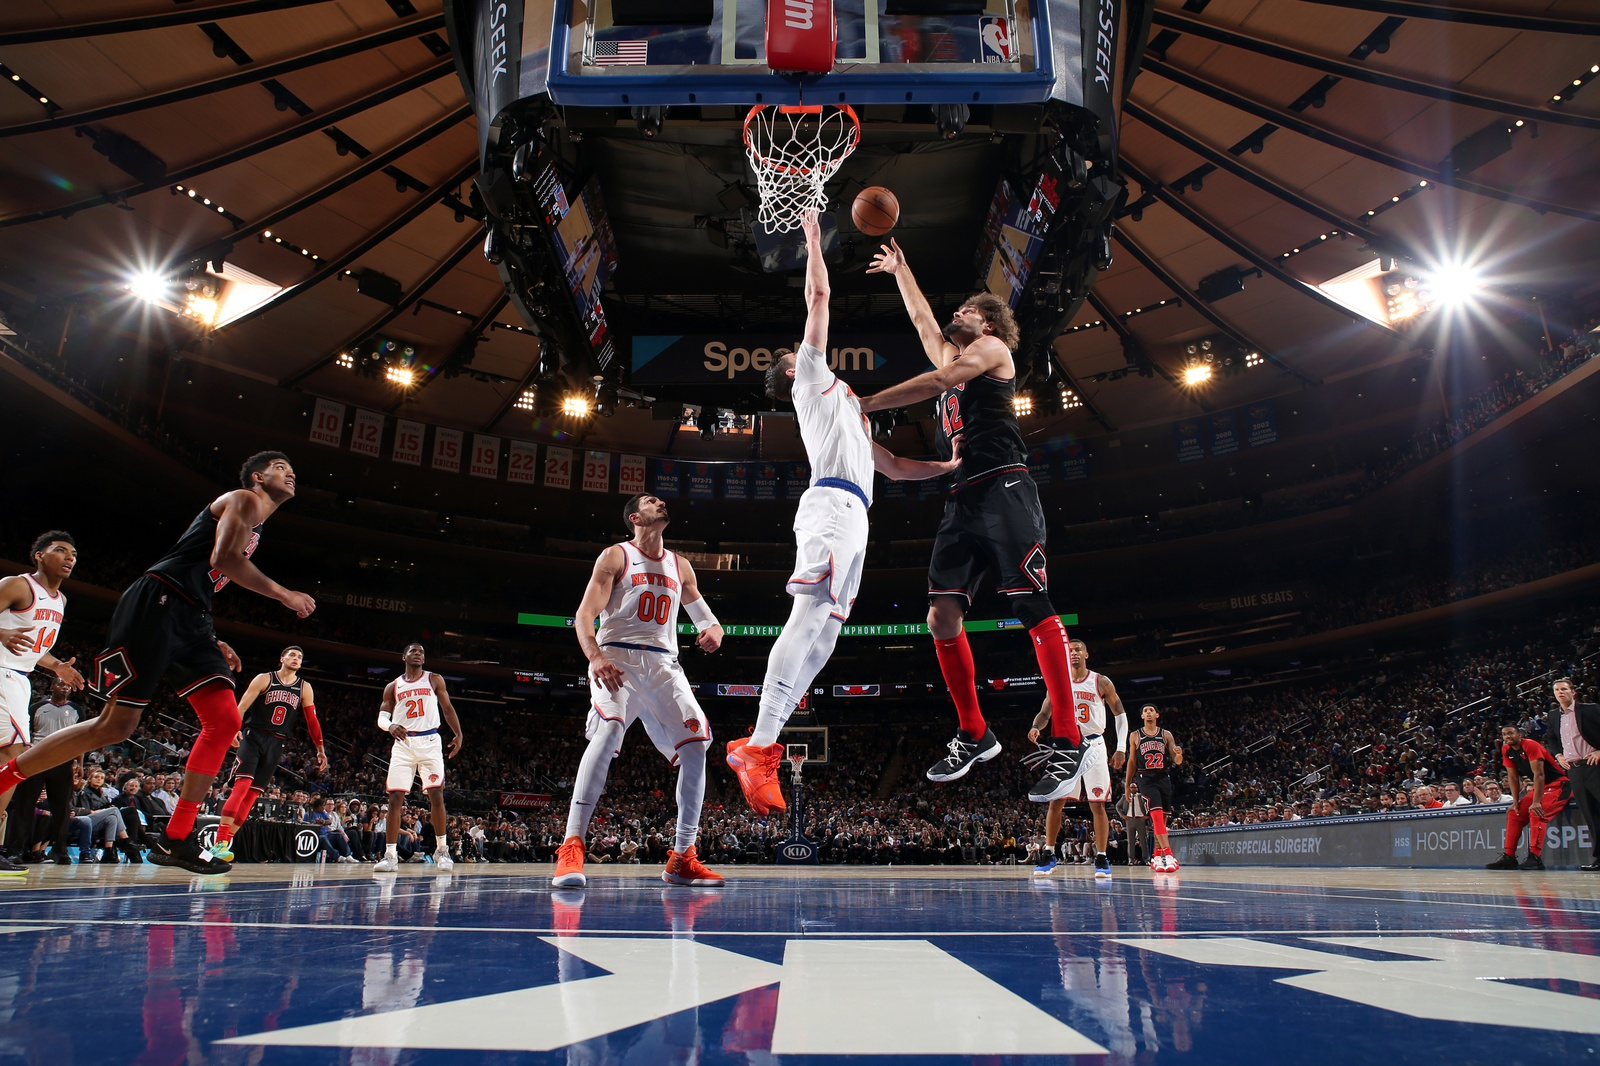 Robin Lopez #42 of the Chicago Bulls goes to the basket against the New York Knicks on November 5, 2018 at Madison Square Garden in New York City, New York.